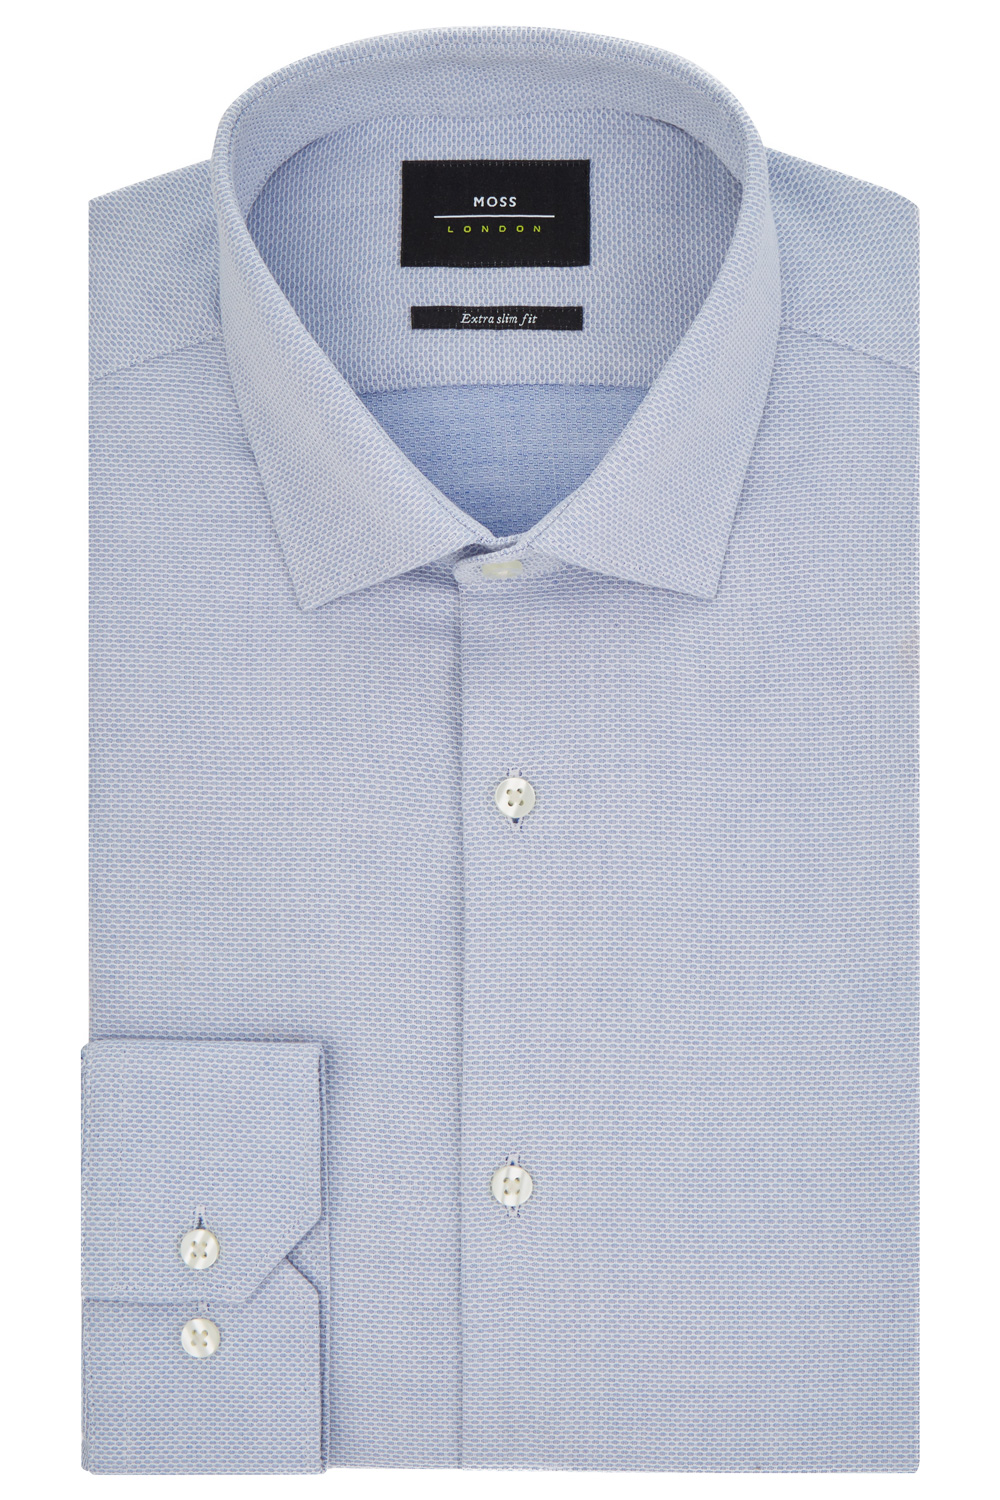 Moss-London-Mens-Shirt-Extra-Slim-Fit-Sky-Blue-Single-Cuff-Oval-Texture-Cotton